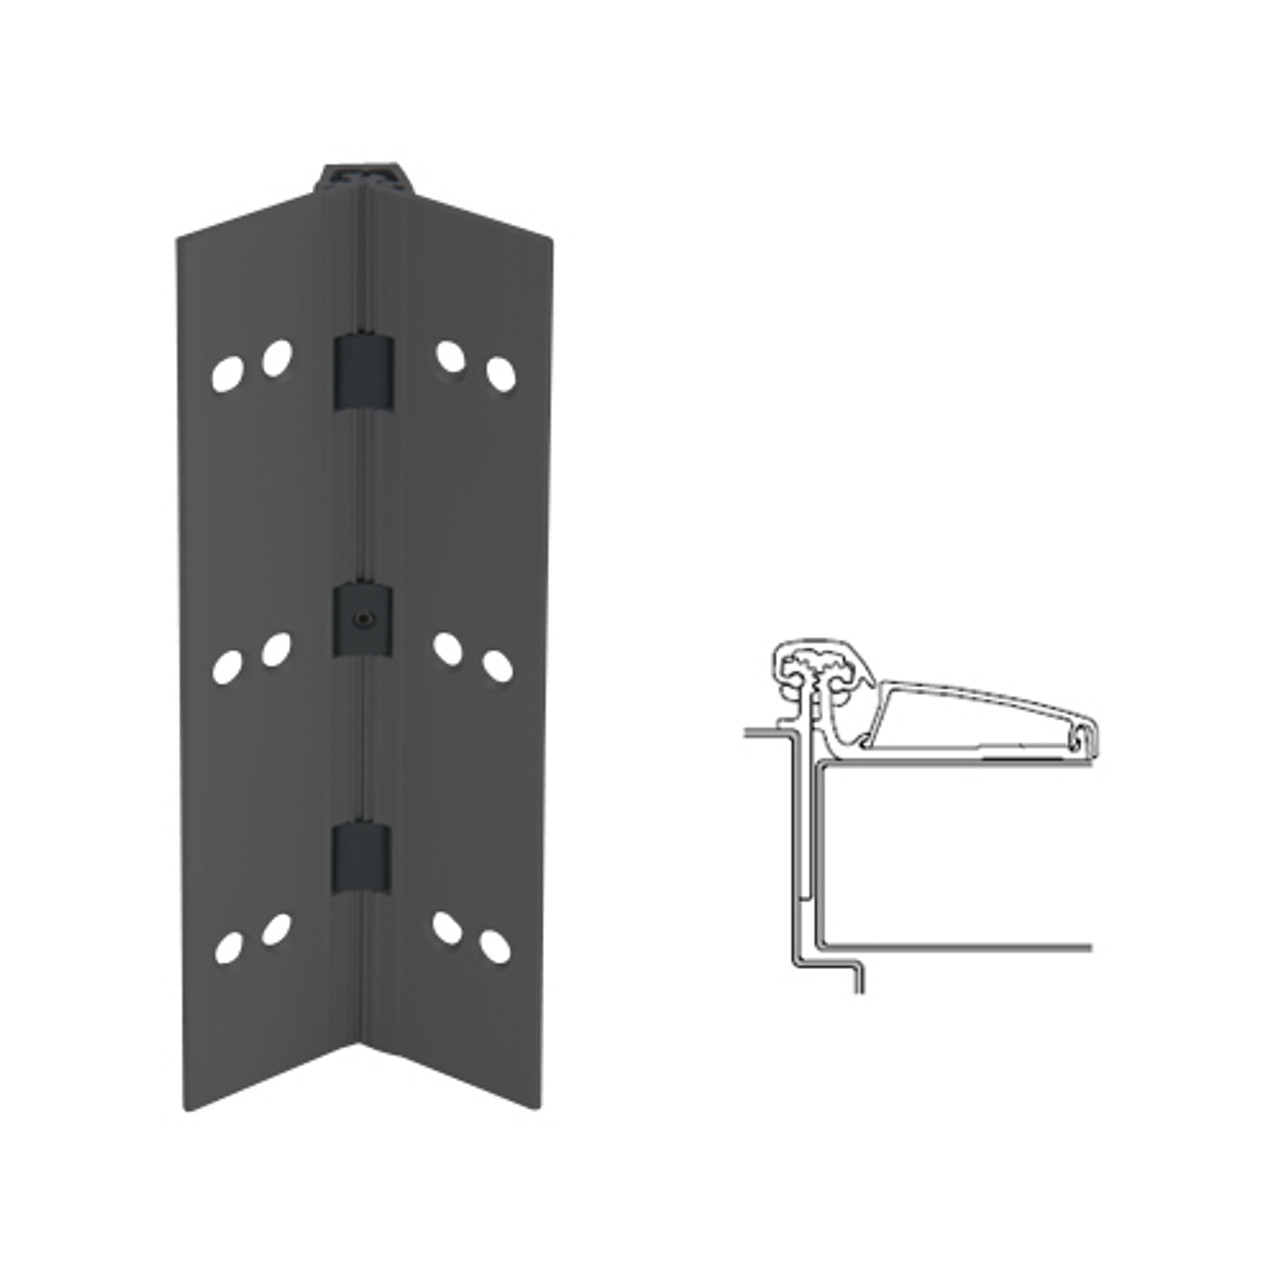 045XY-315AN-120-TFWD IVES Adjustable Half Surface Continuous Geared Hinges with Thread Forming Screws in Anodized Black